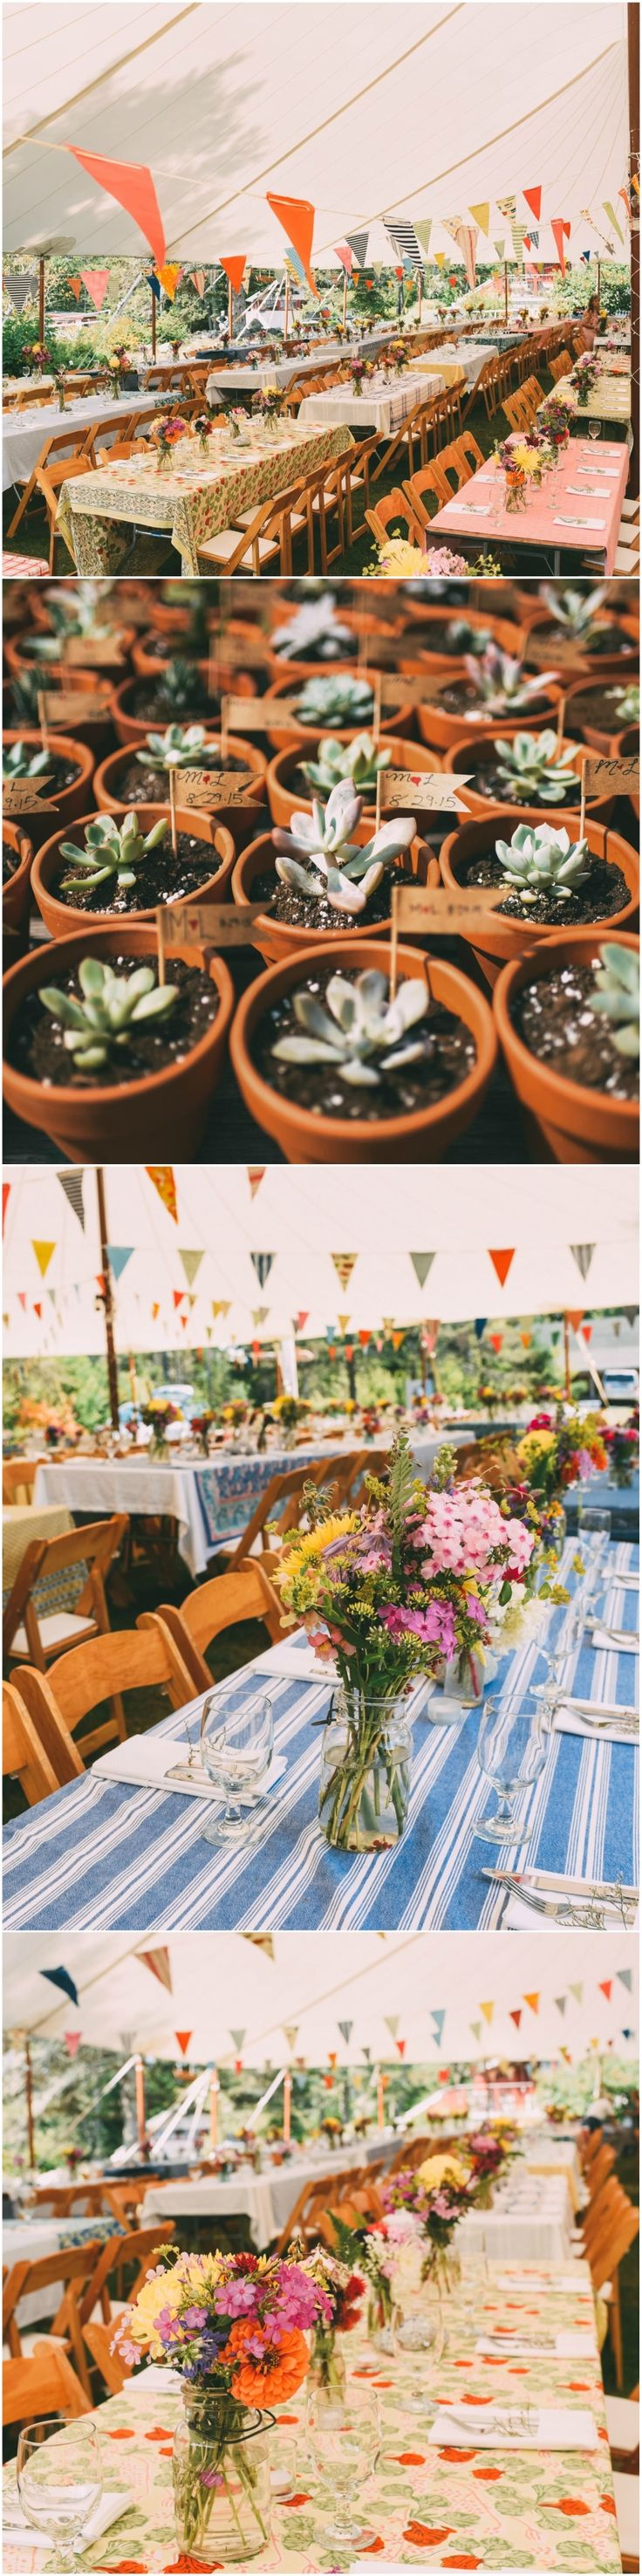 Camp wedding, outdoor, DIY, pennant banners, tented reception, mismatched tablecloths, picnic tables, potted succulent favors // Cait Bourgault Photography